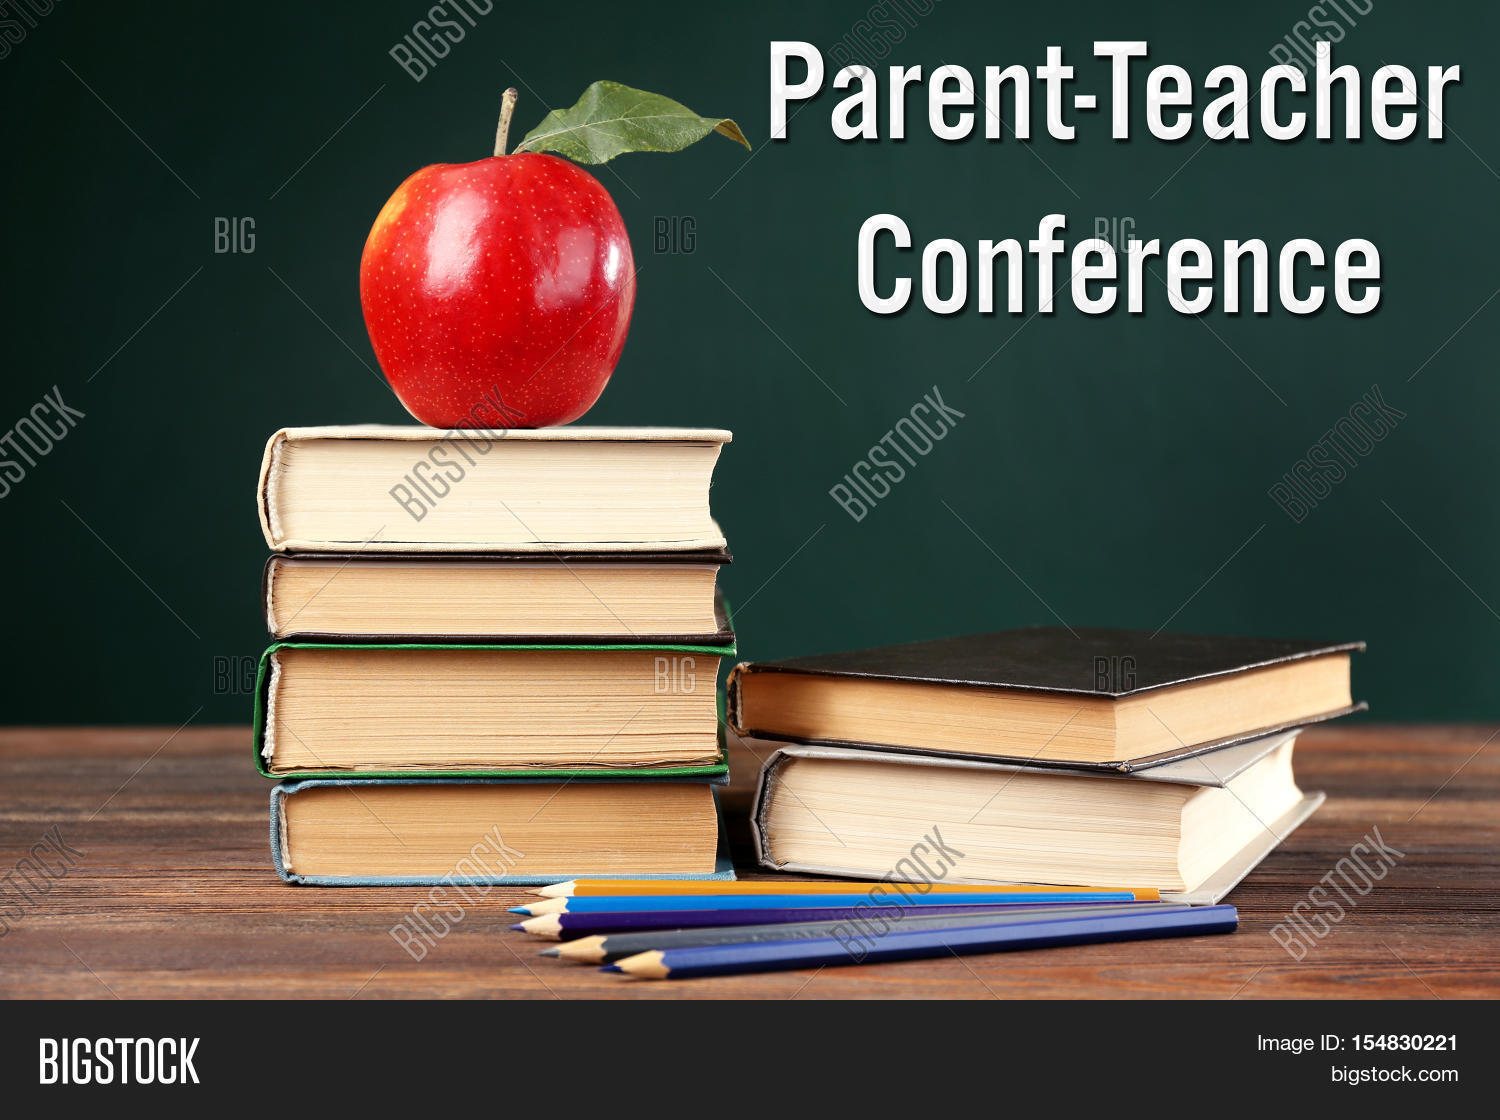 Stacked Books With Colorful Pencils And Apple On Wooden Table Text PARENT TEACHER CONFERENCE